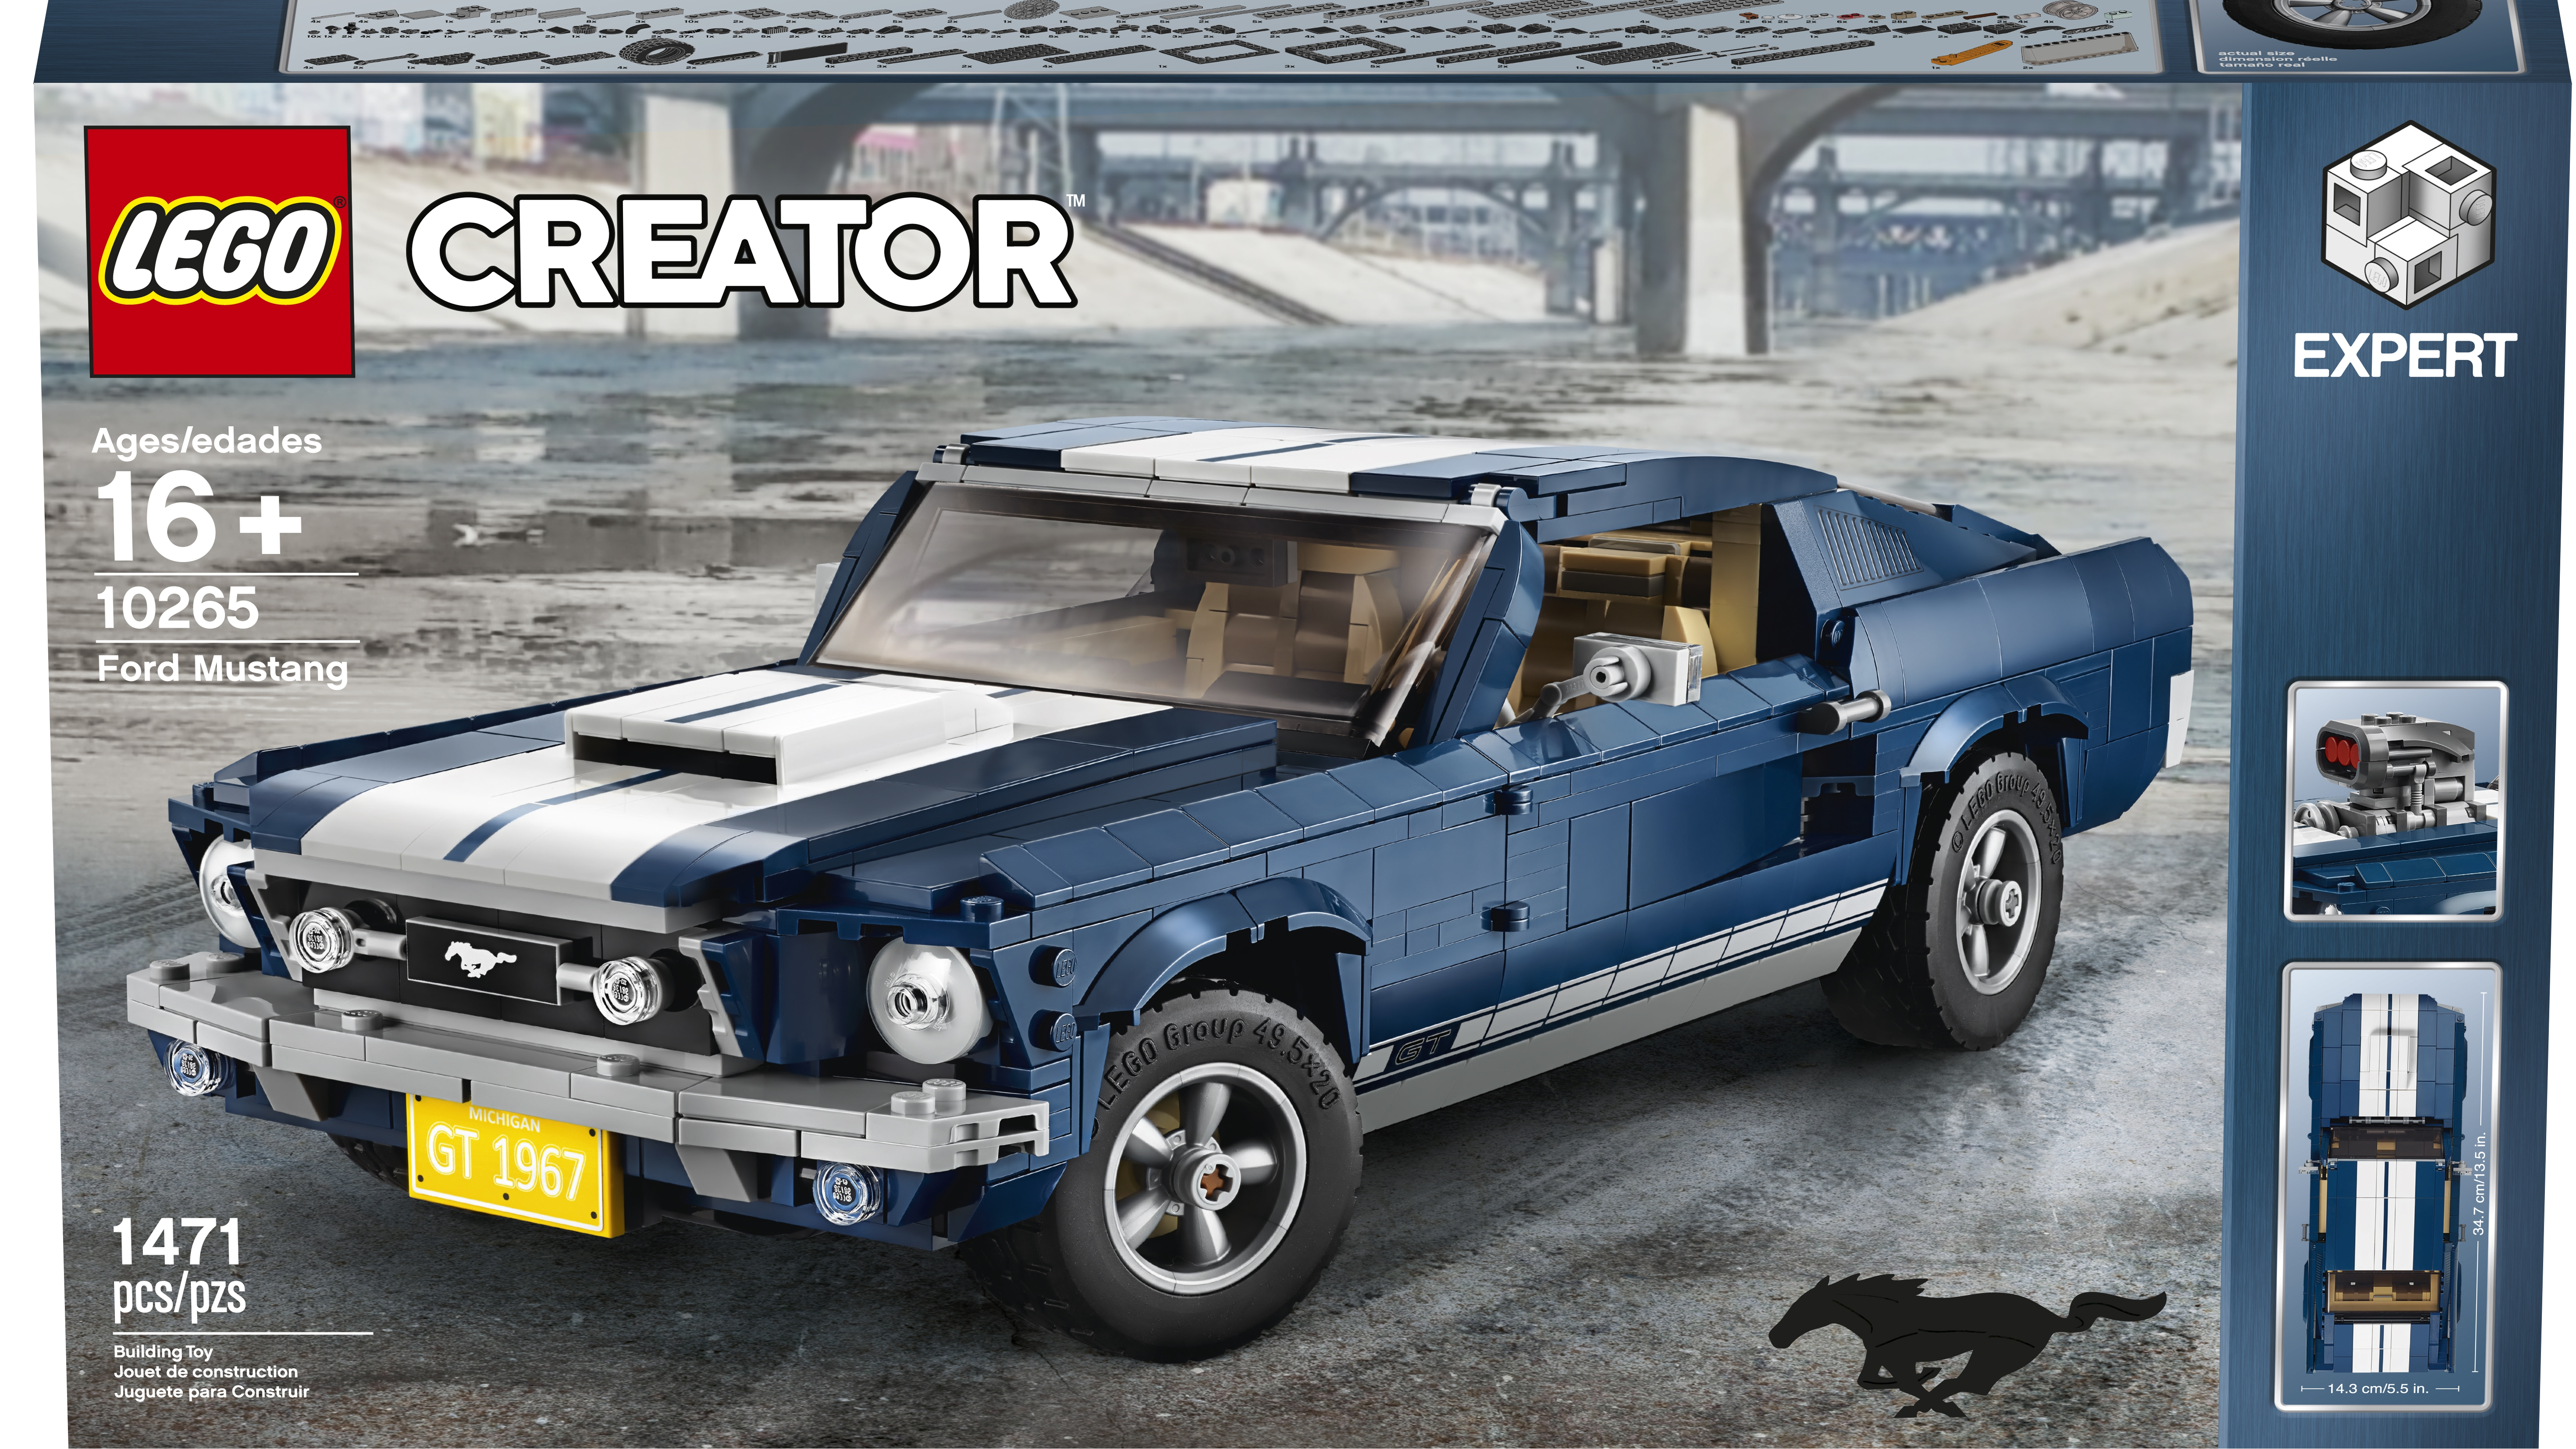 Lego offers classic 1967 ford mustang kit to fulfill your pony car dreams